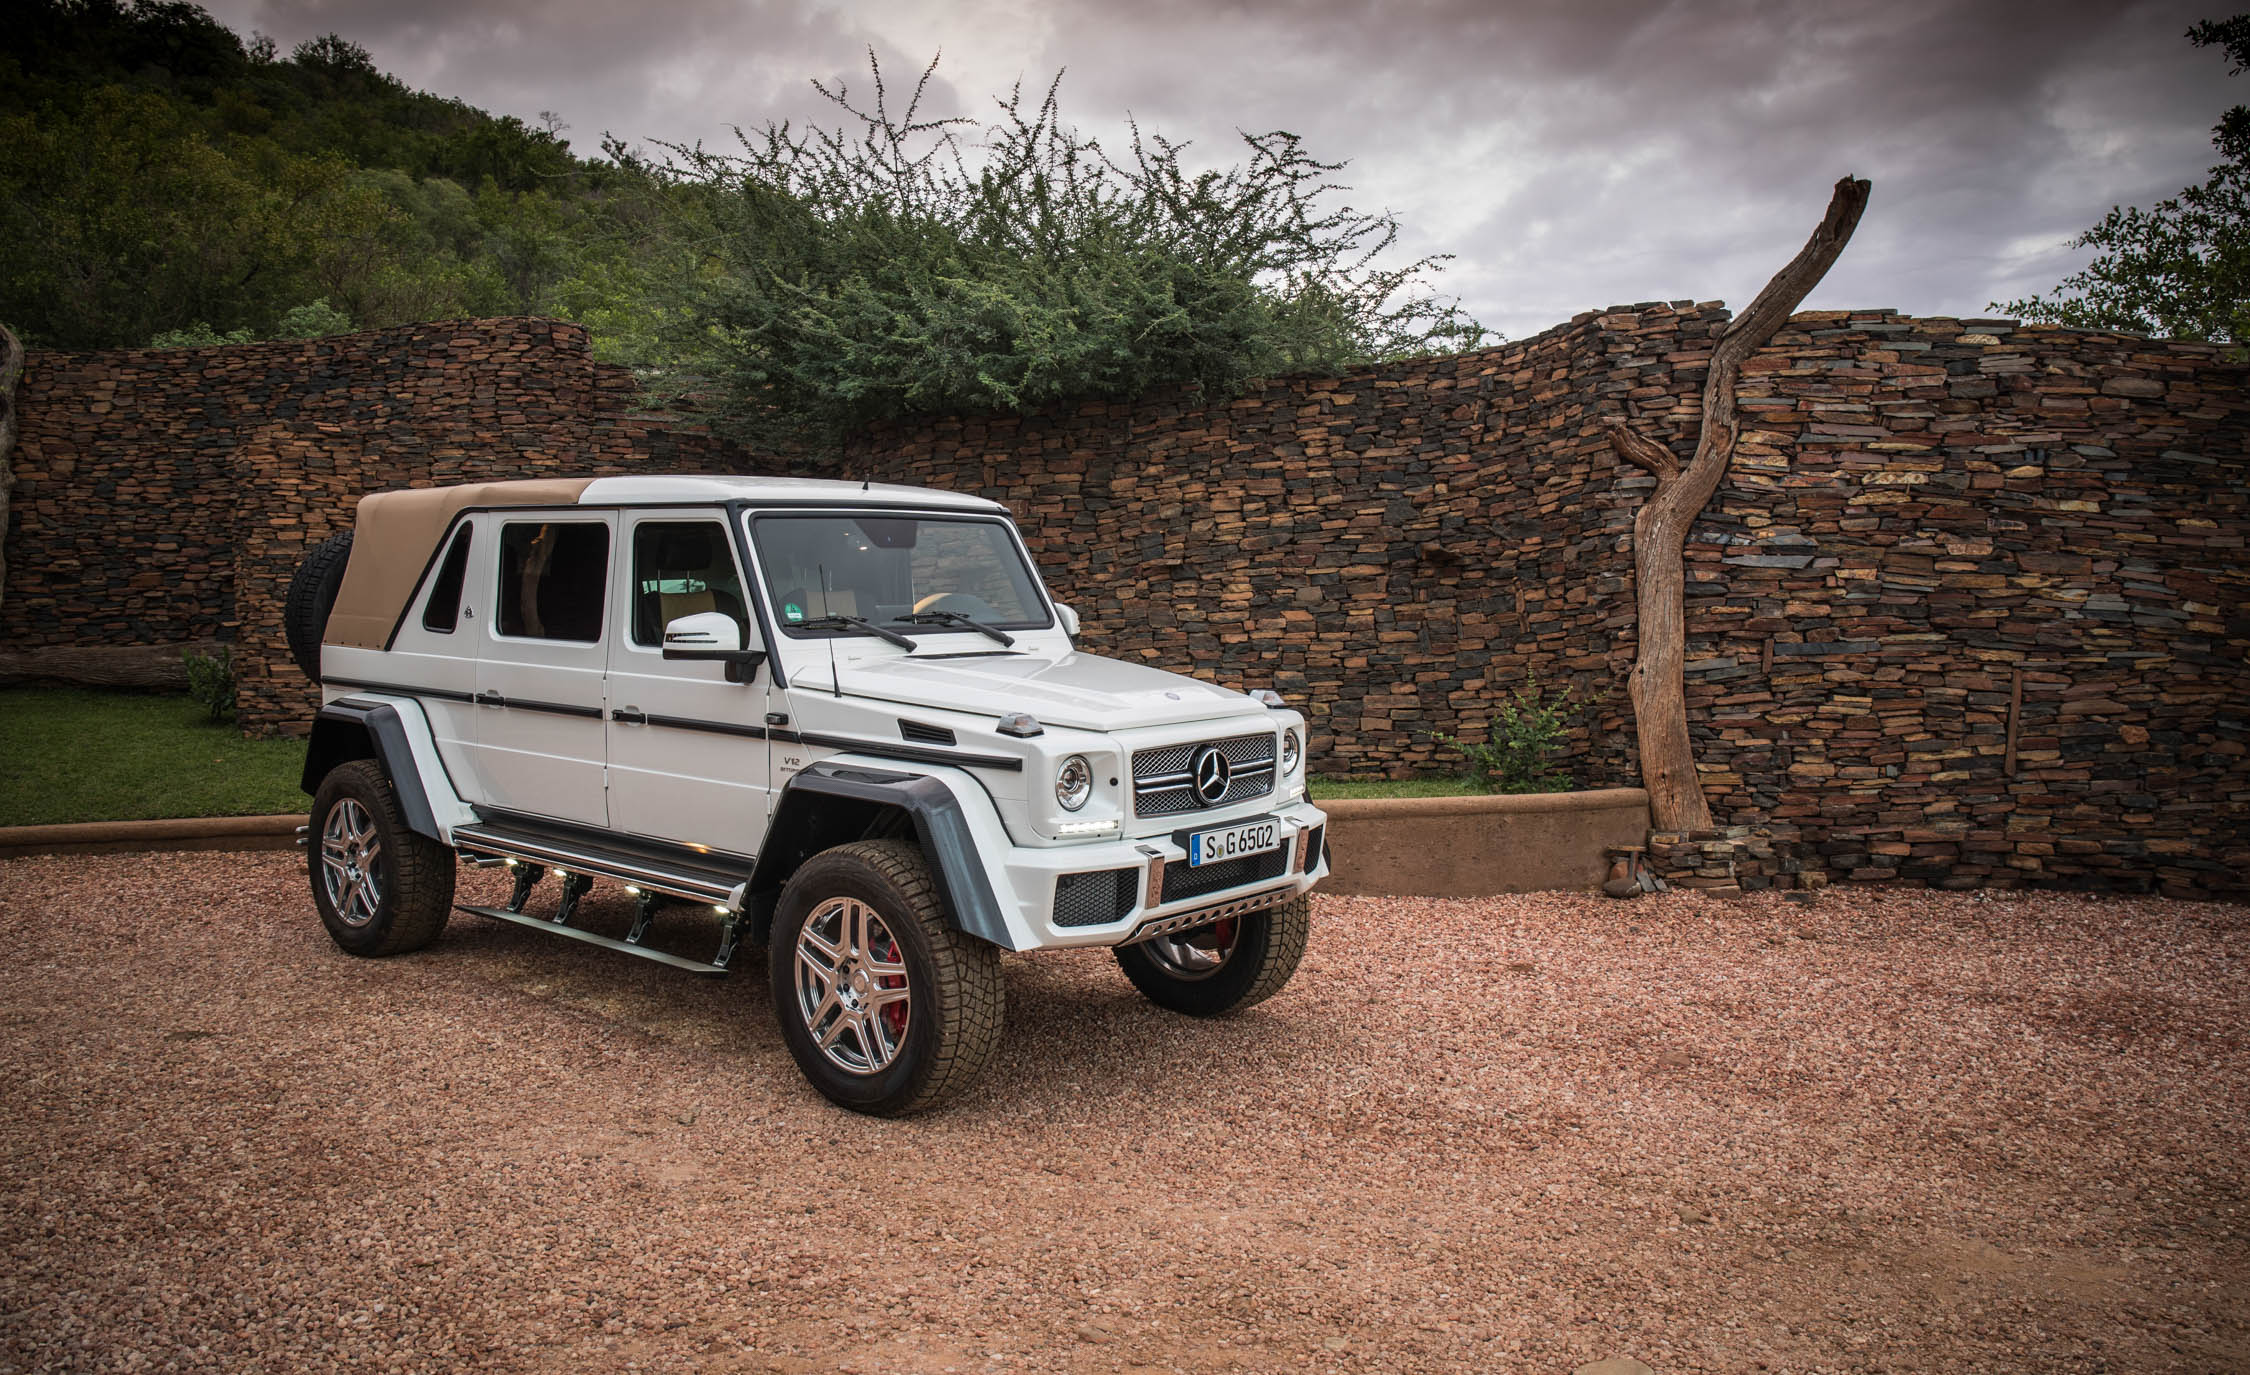 2018 Mercedes Maybach G650 Landaulet White Exterior Front And Side (Photo 47 of 52)